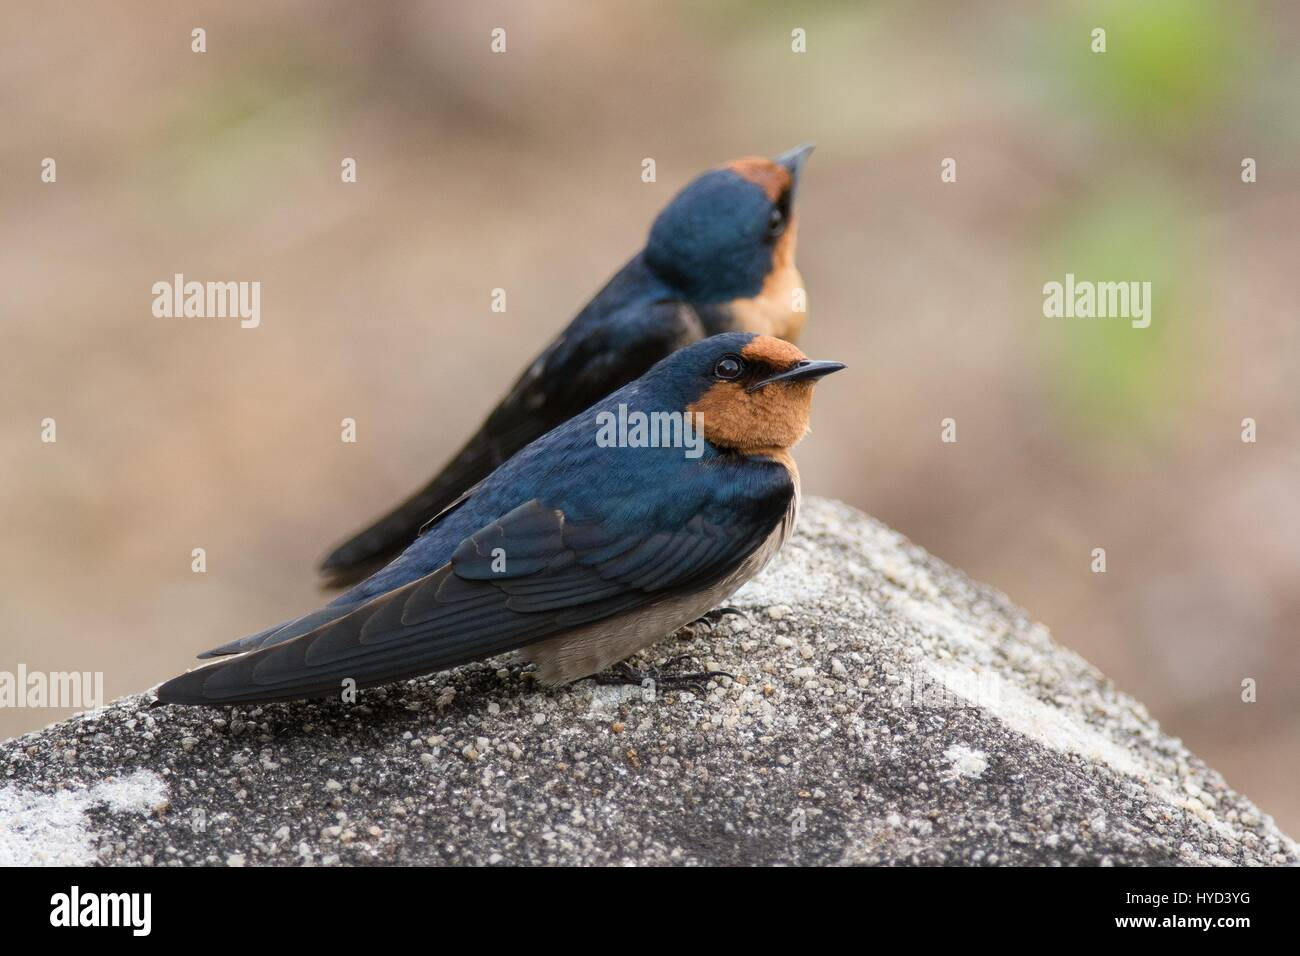 Two adult Pacific swallows - Hirundo tahitica - perched on rock together and looking up into the sky - Stock Image